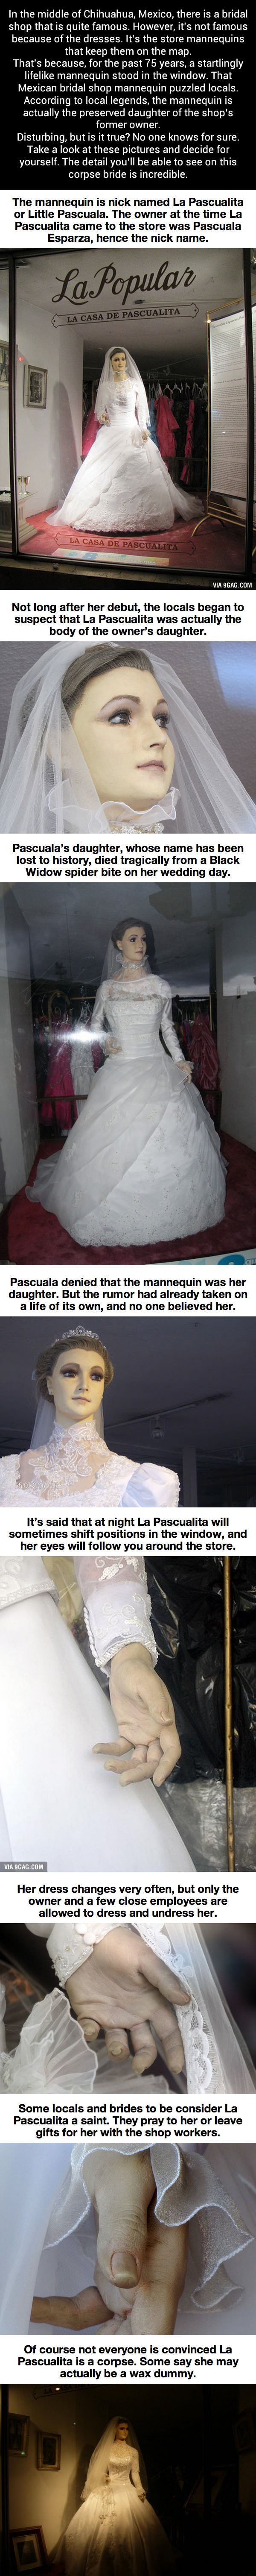 A Mexican Bridal Shop Mannequin Looks Just Like A Preserved Human Corpse